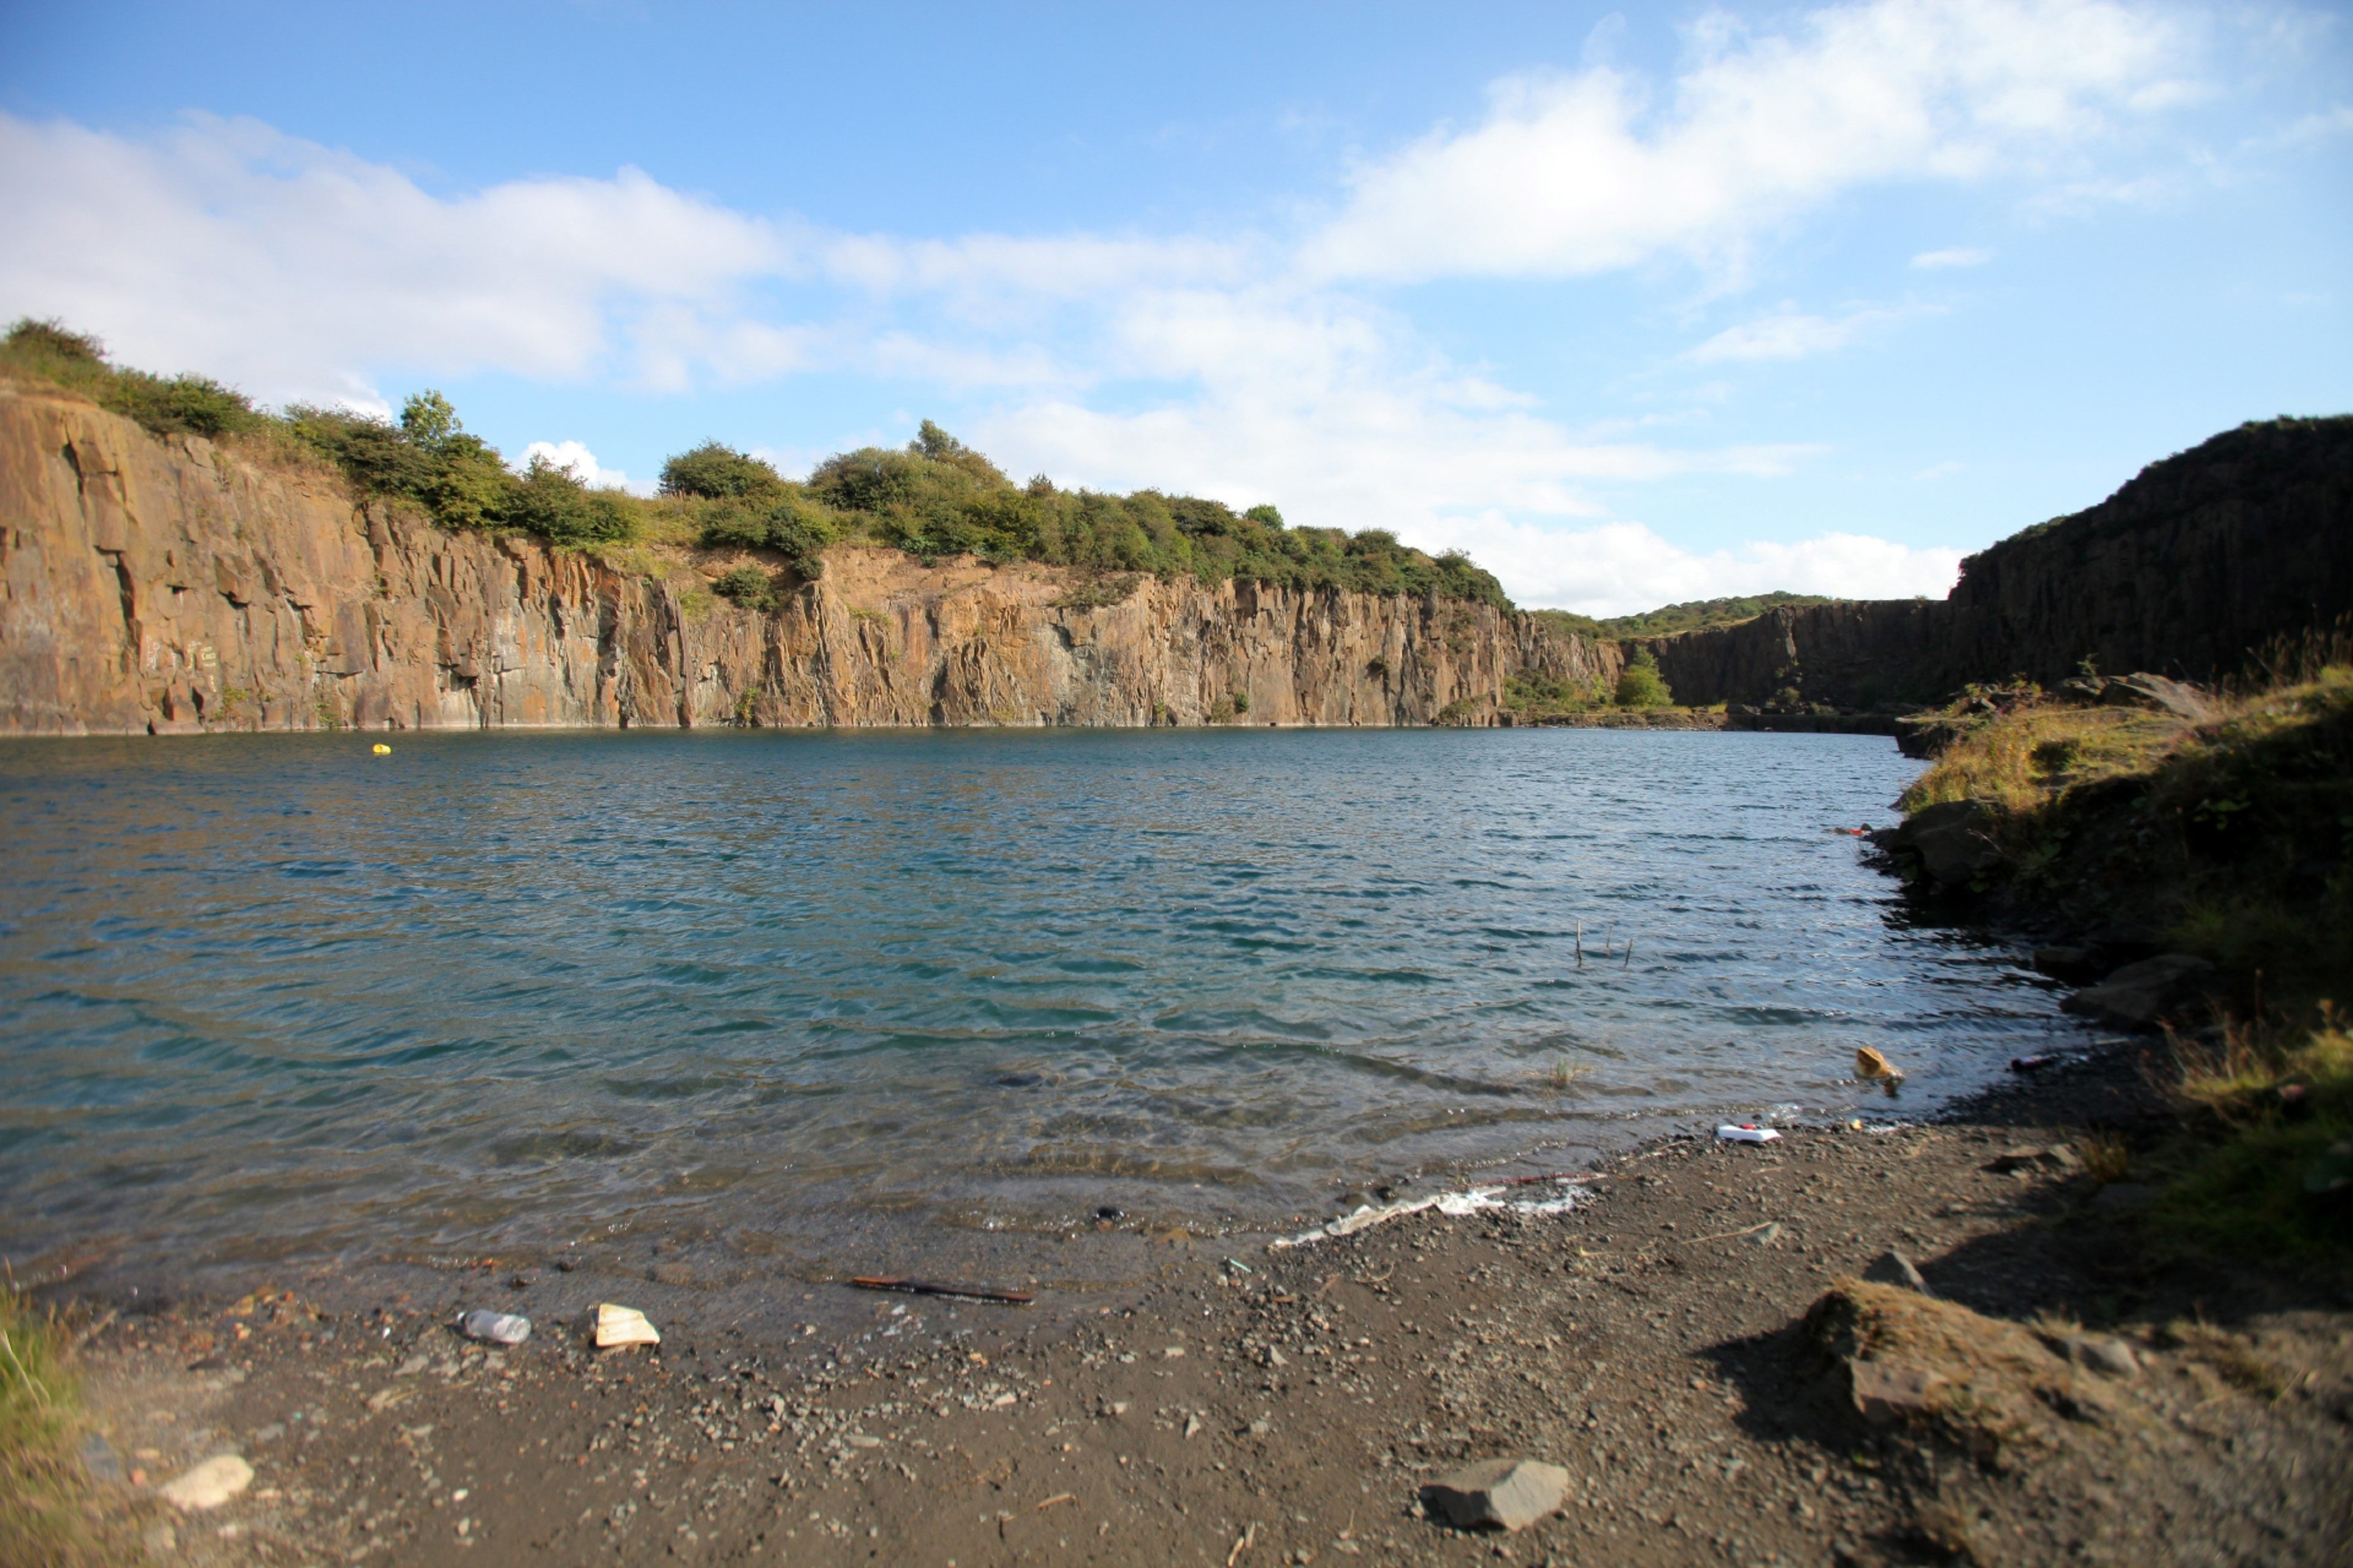 Prestonhill Quarry has claimed youngsters' lives